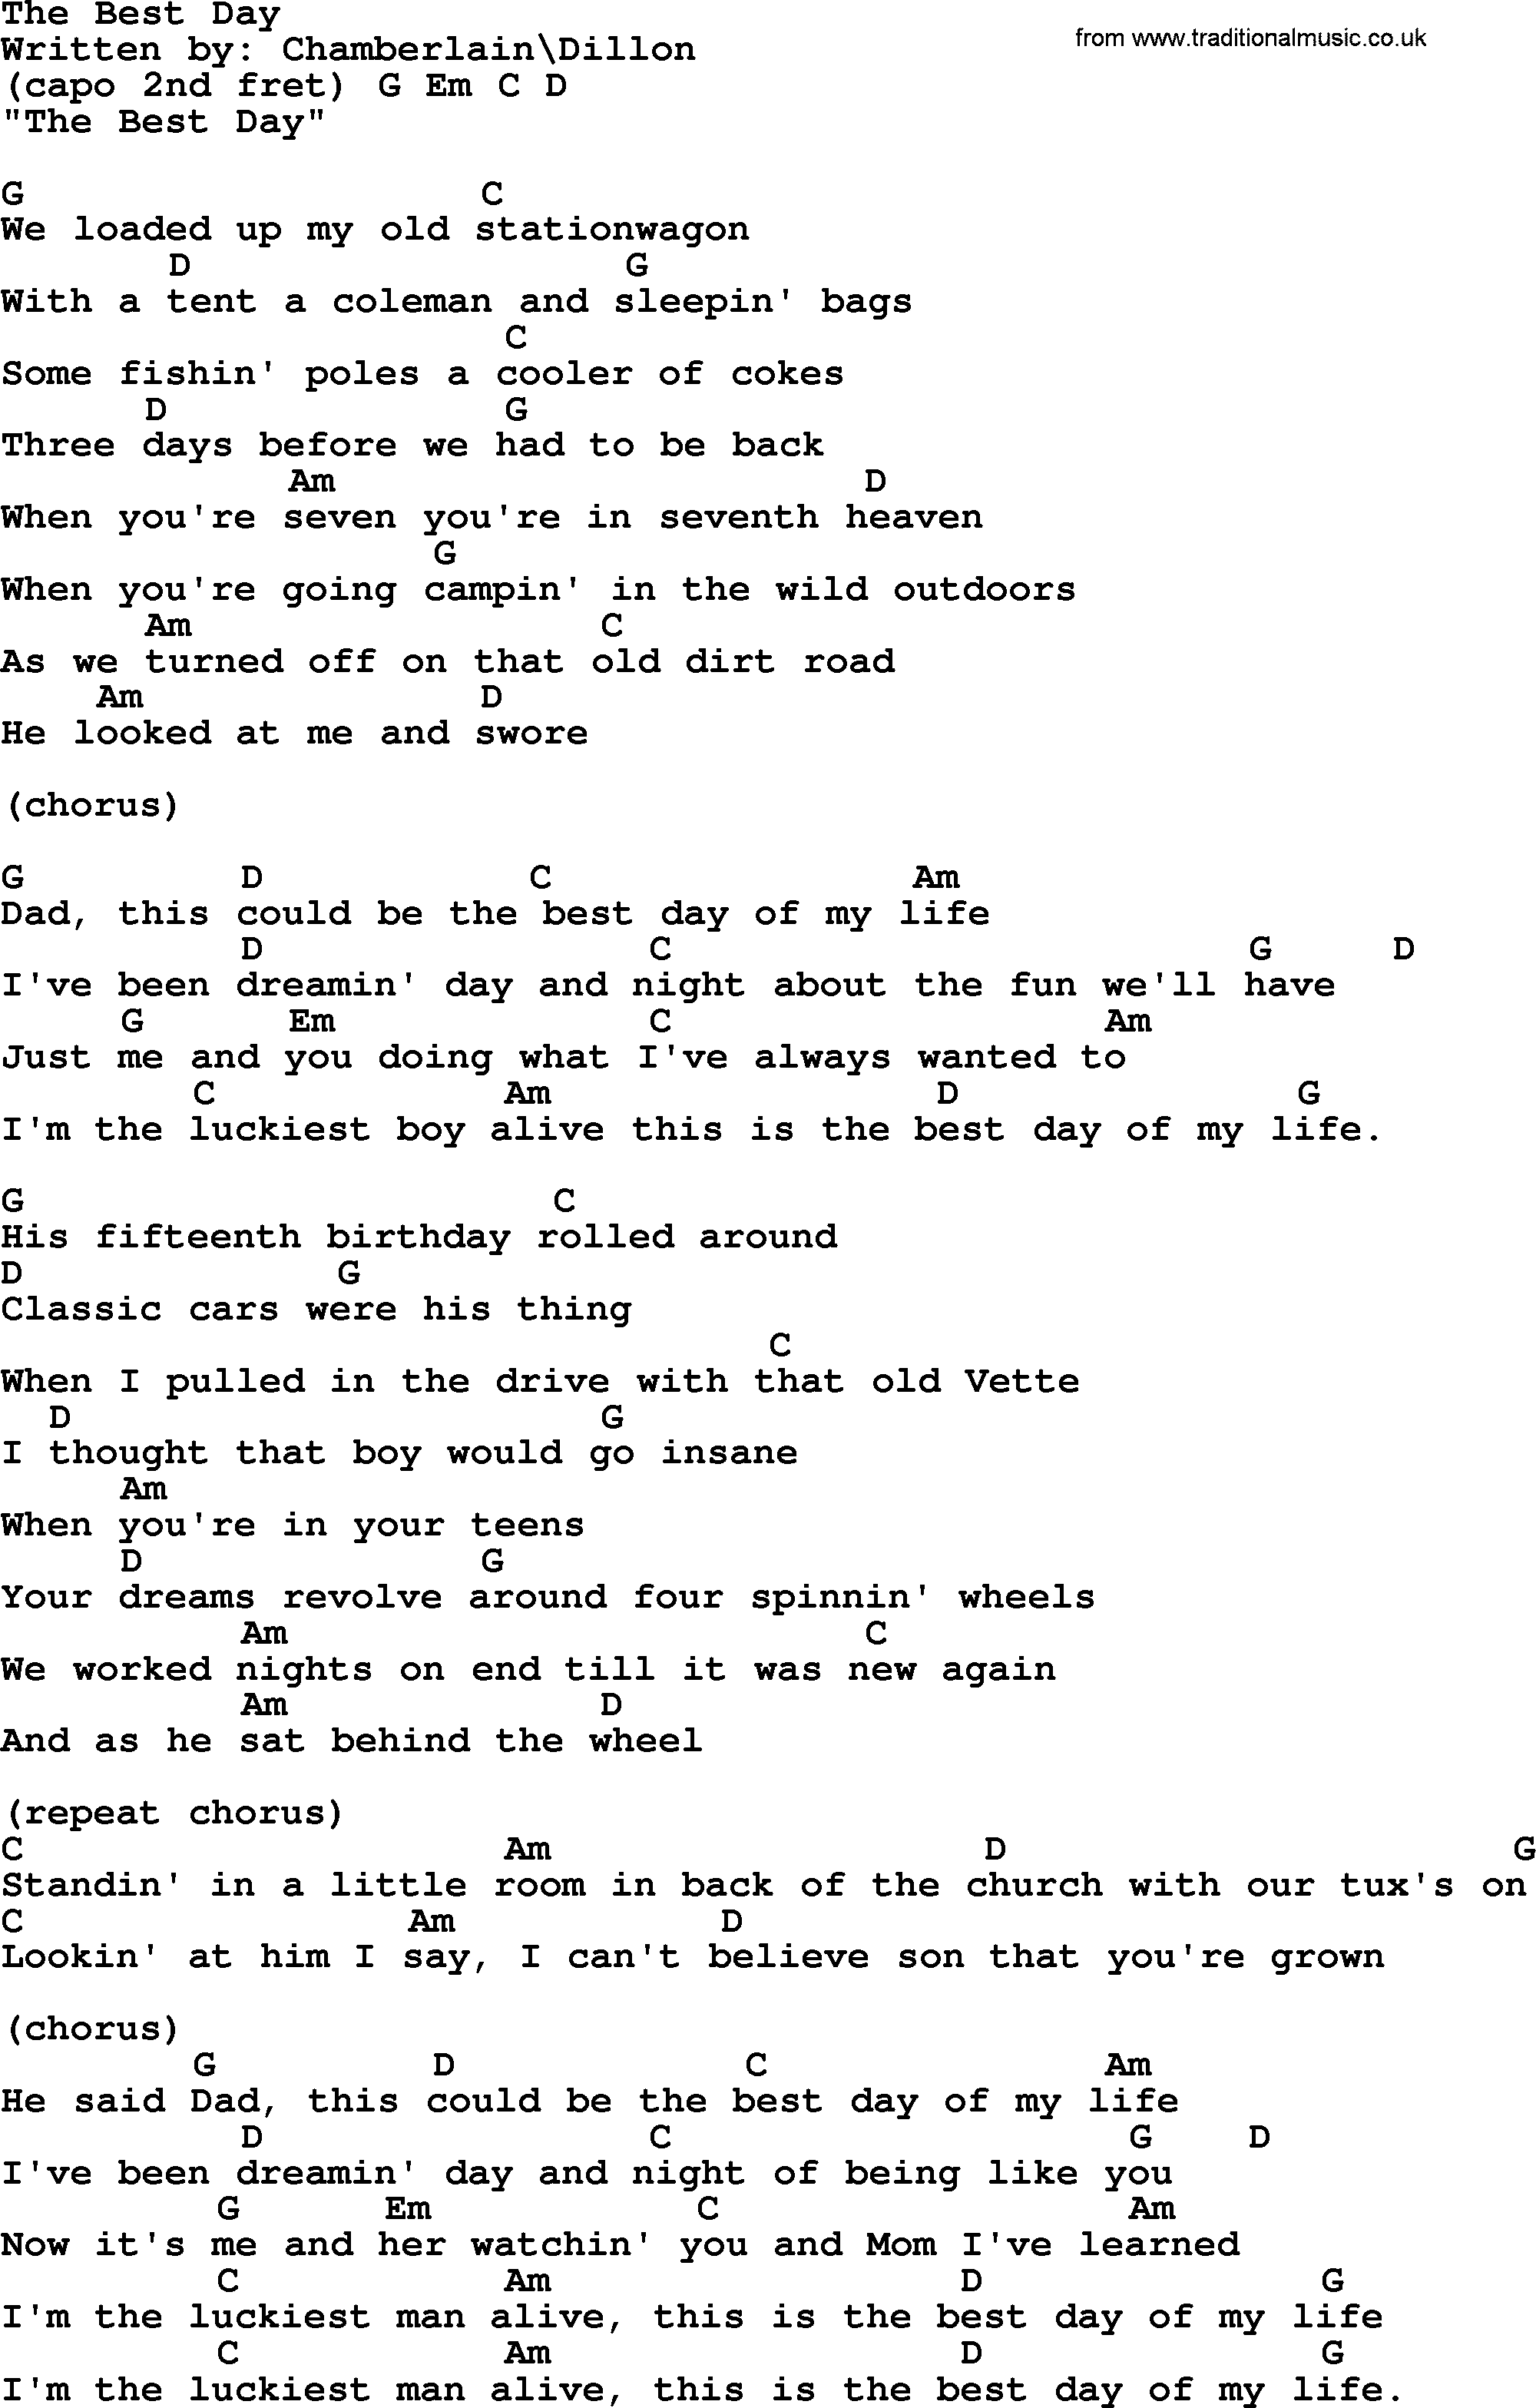 George strait song the best day lyrics and chords ukulele george strait song the best day lyrics and chords hexwebz Gallery